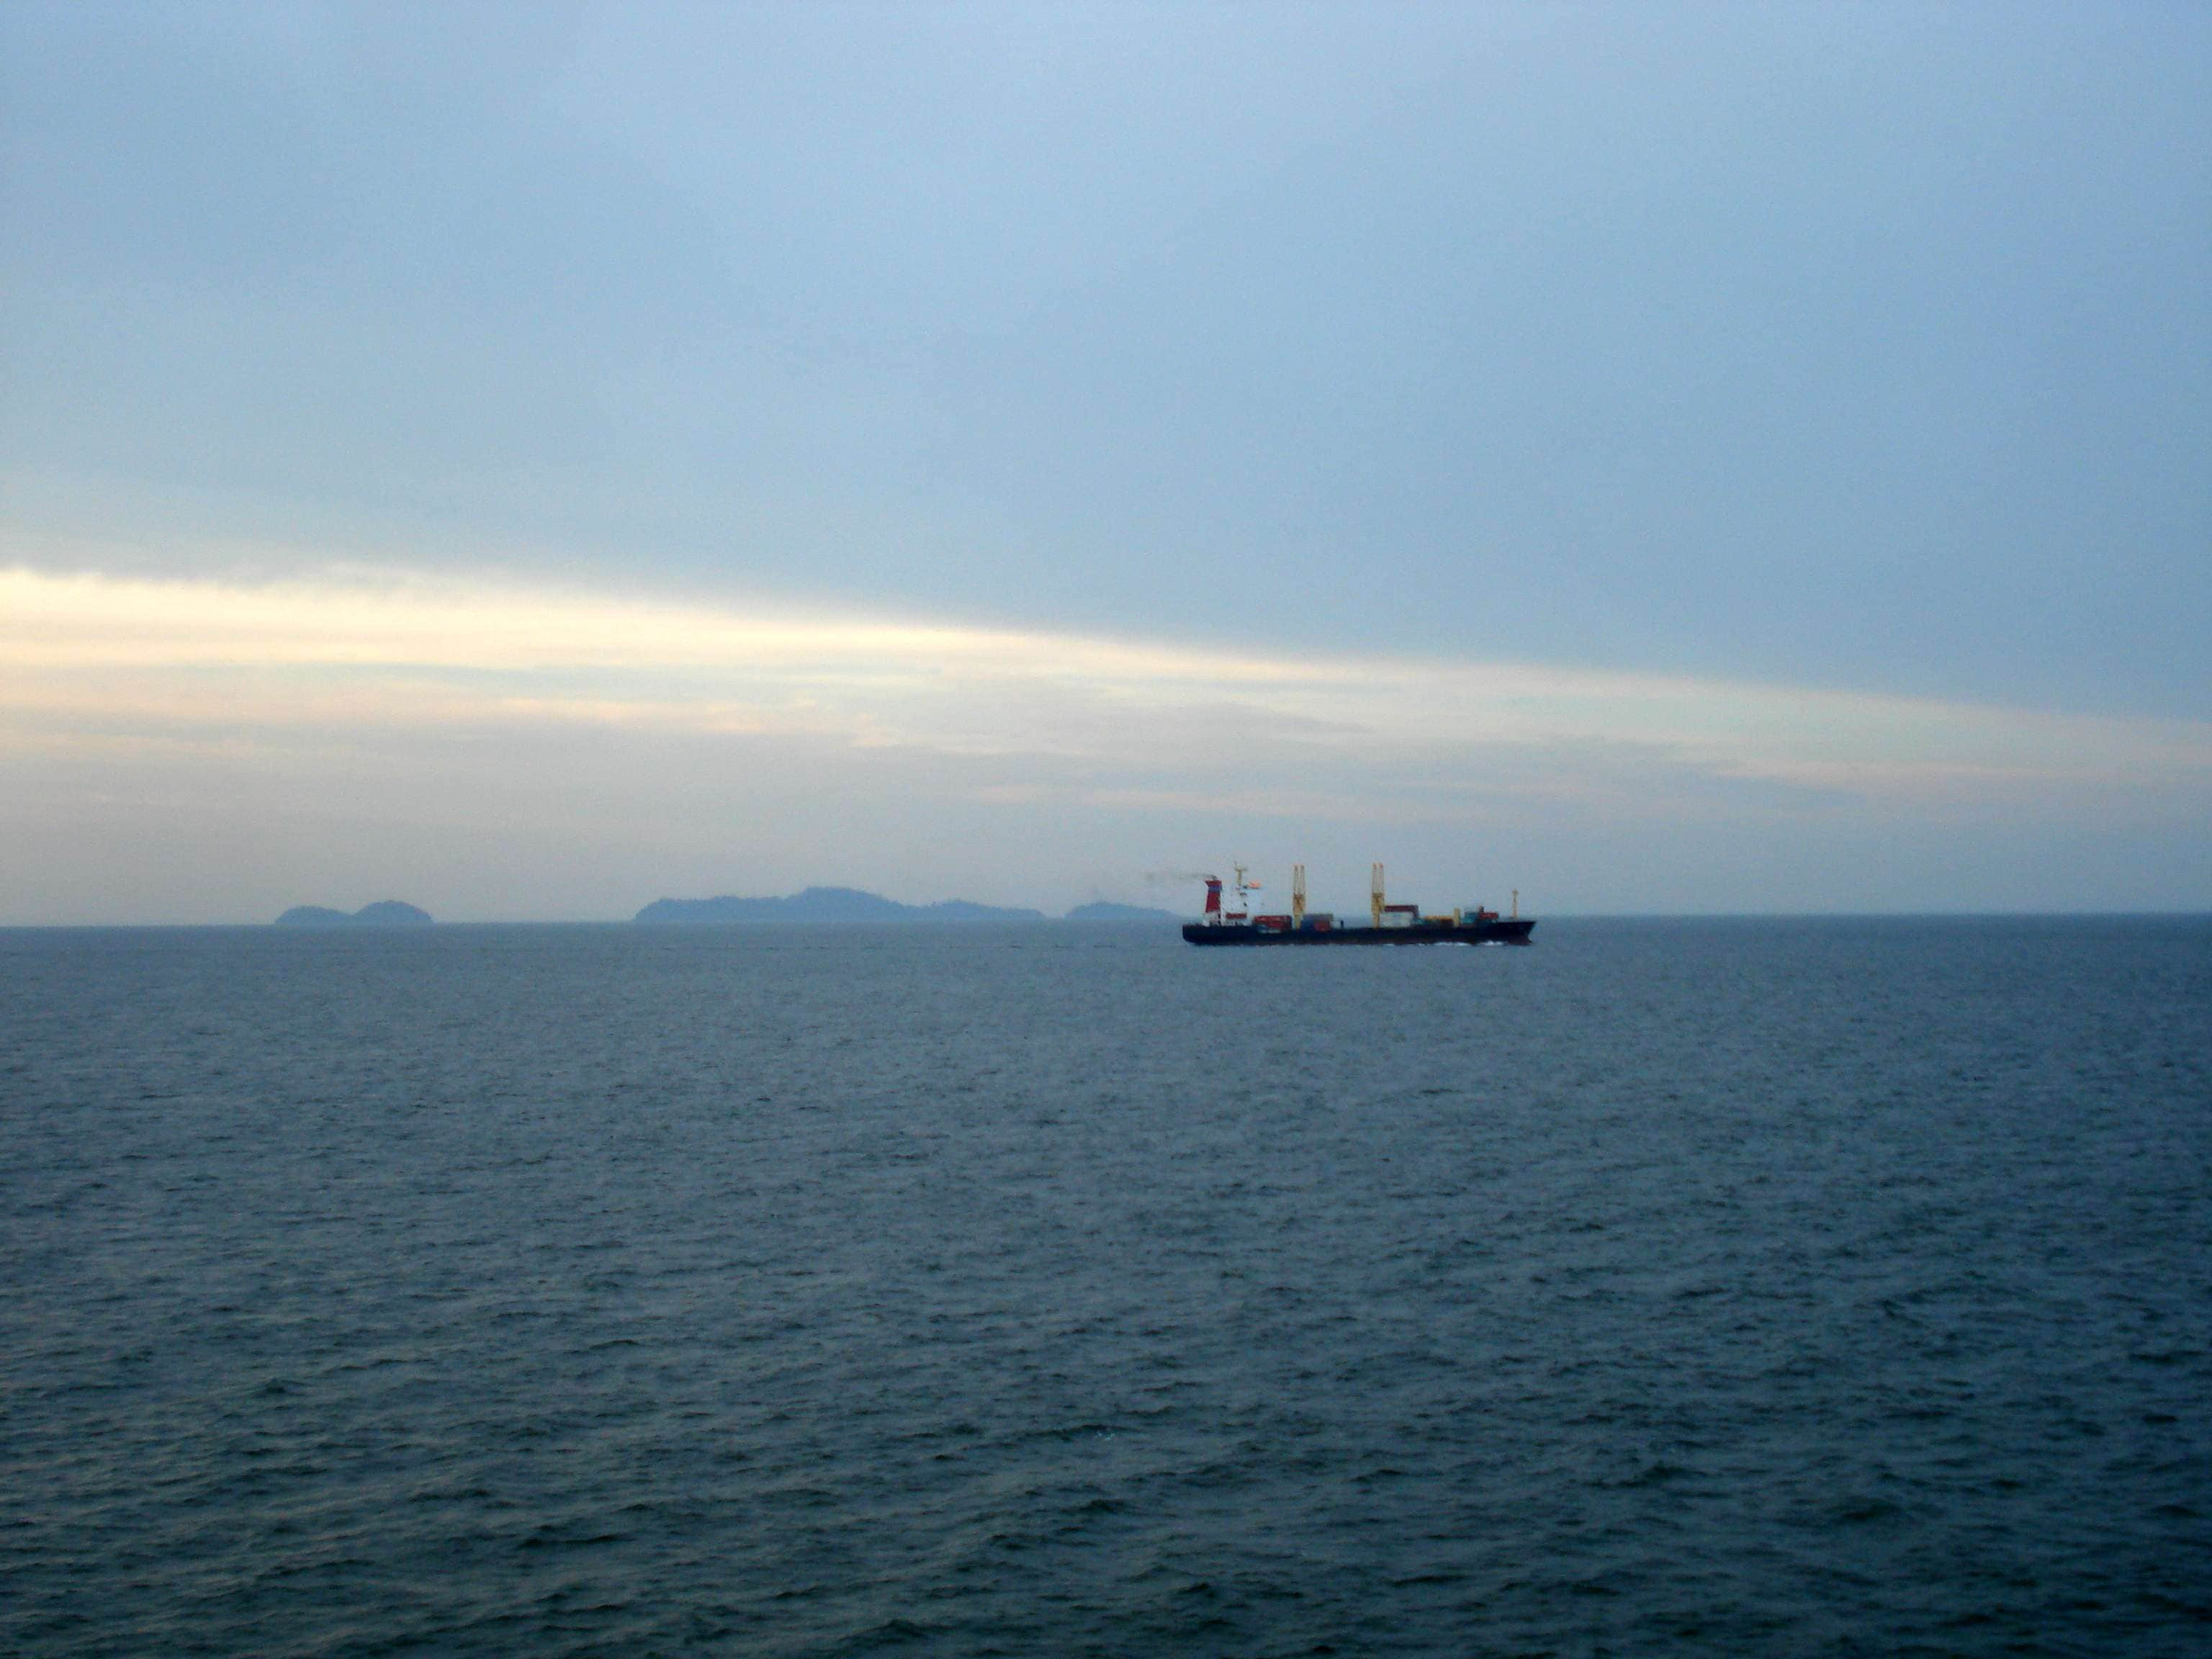 A ship passes through the Strait of Malacca chokepoint on June 5, 2009. (Image Credit: Wikimedia Commons/XEON)